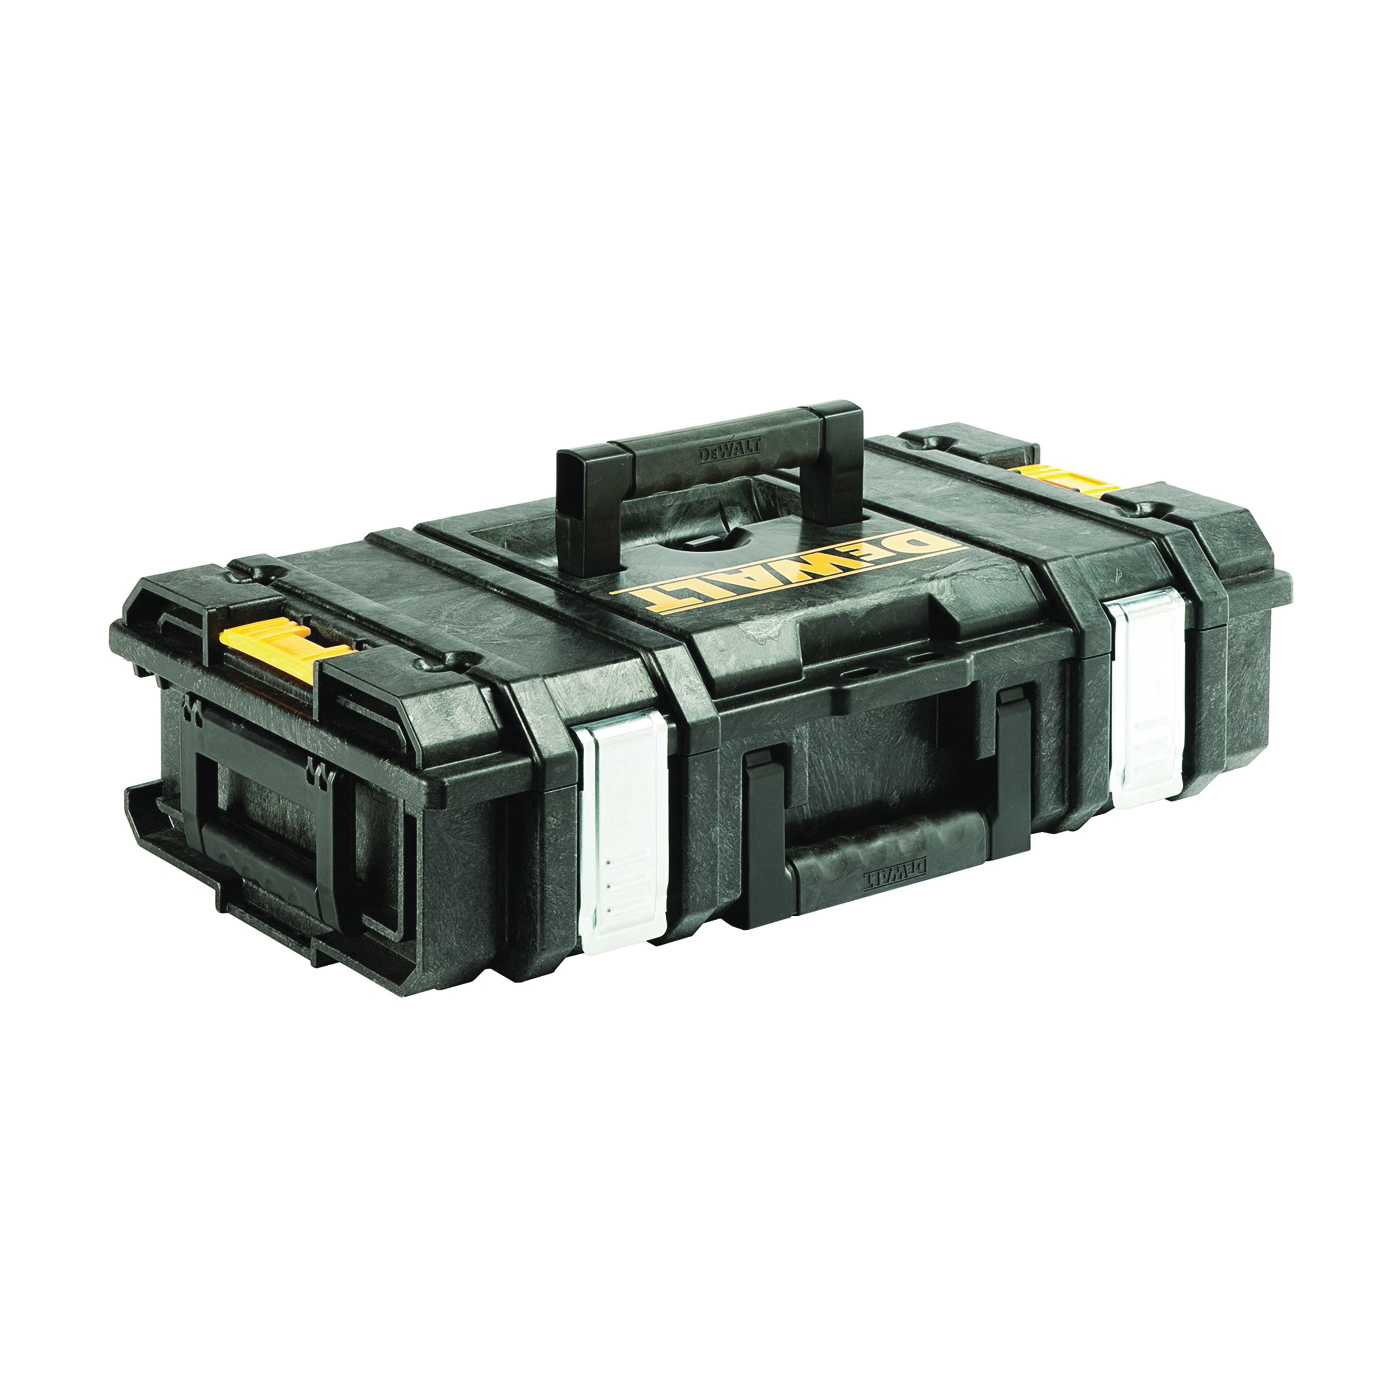 Picture of DeWALT ToughSystem DS150 Series DWST08201 Tool Box, 66 lb, Polypropylene, Black